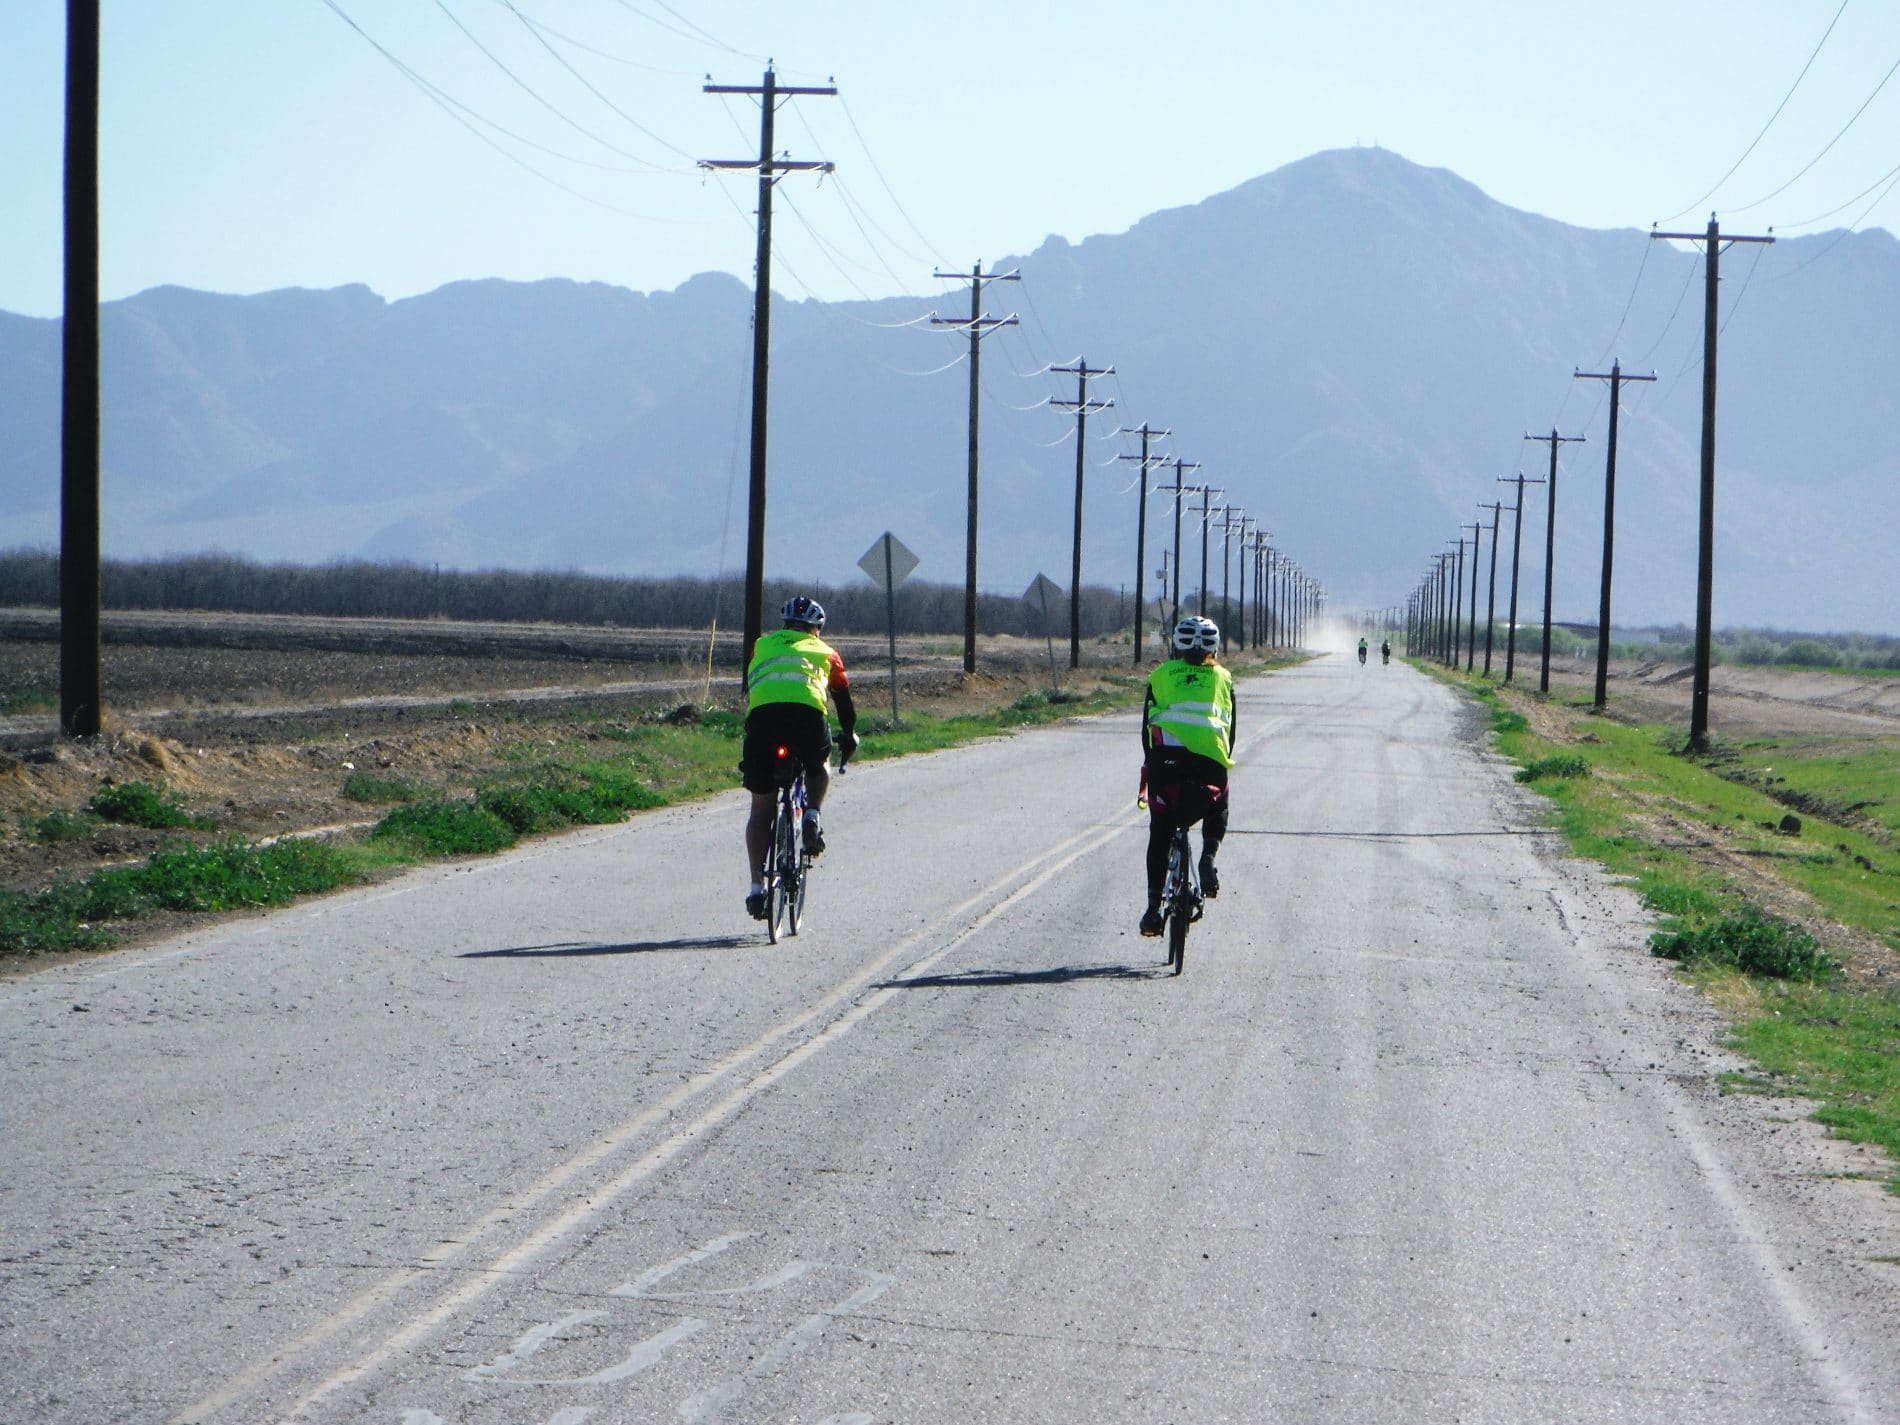 two bikers on a long road